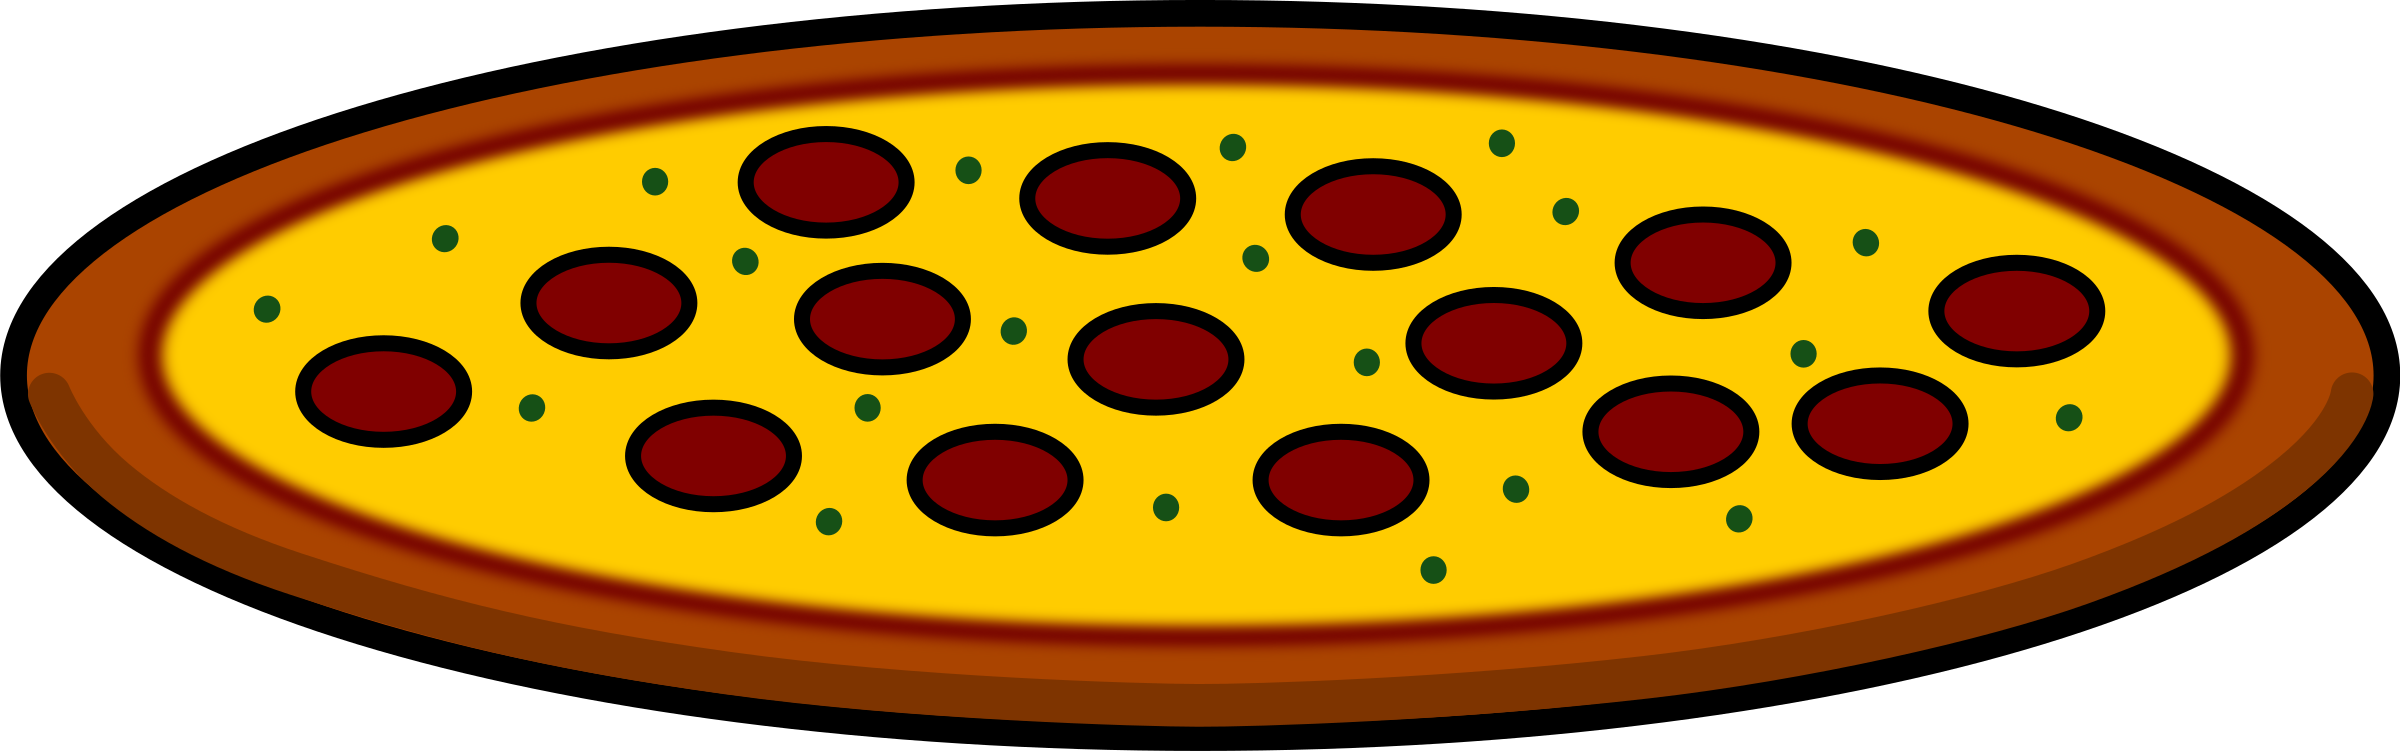 Mushrooms clipart pizza topping. Pepperoni group